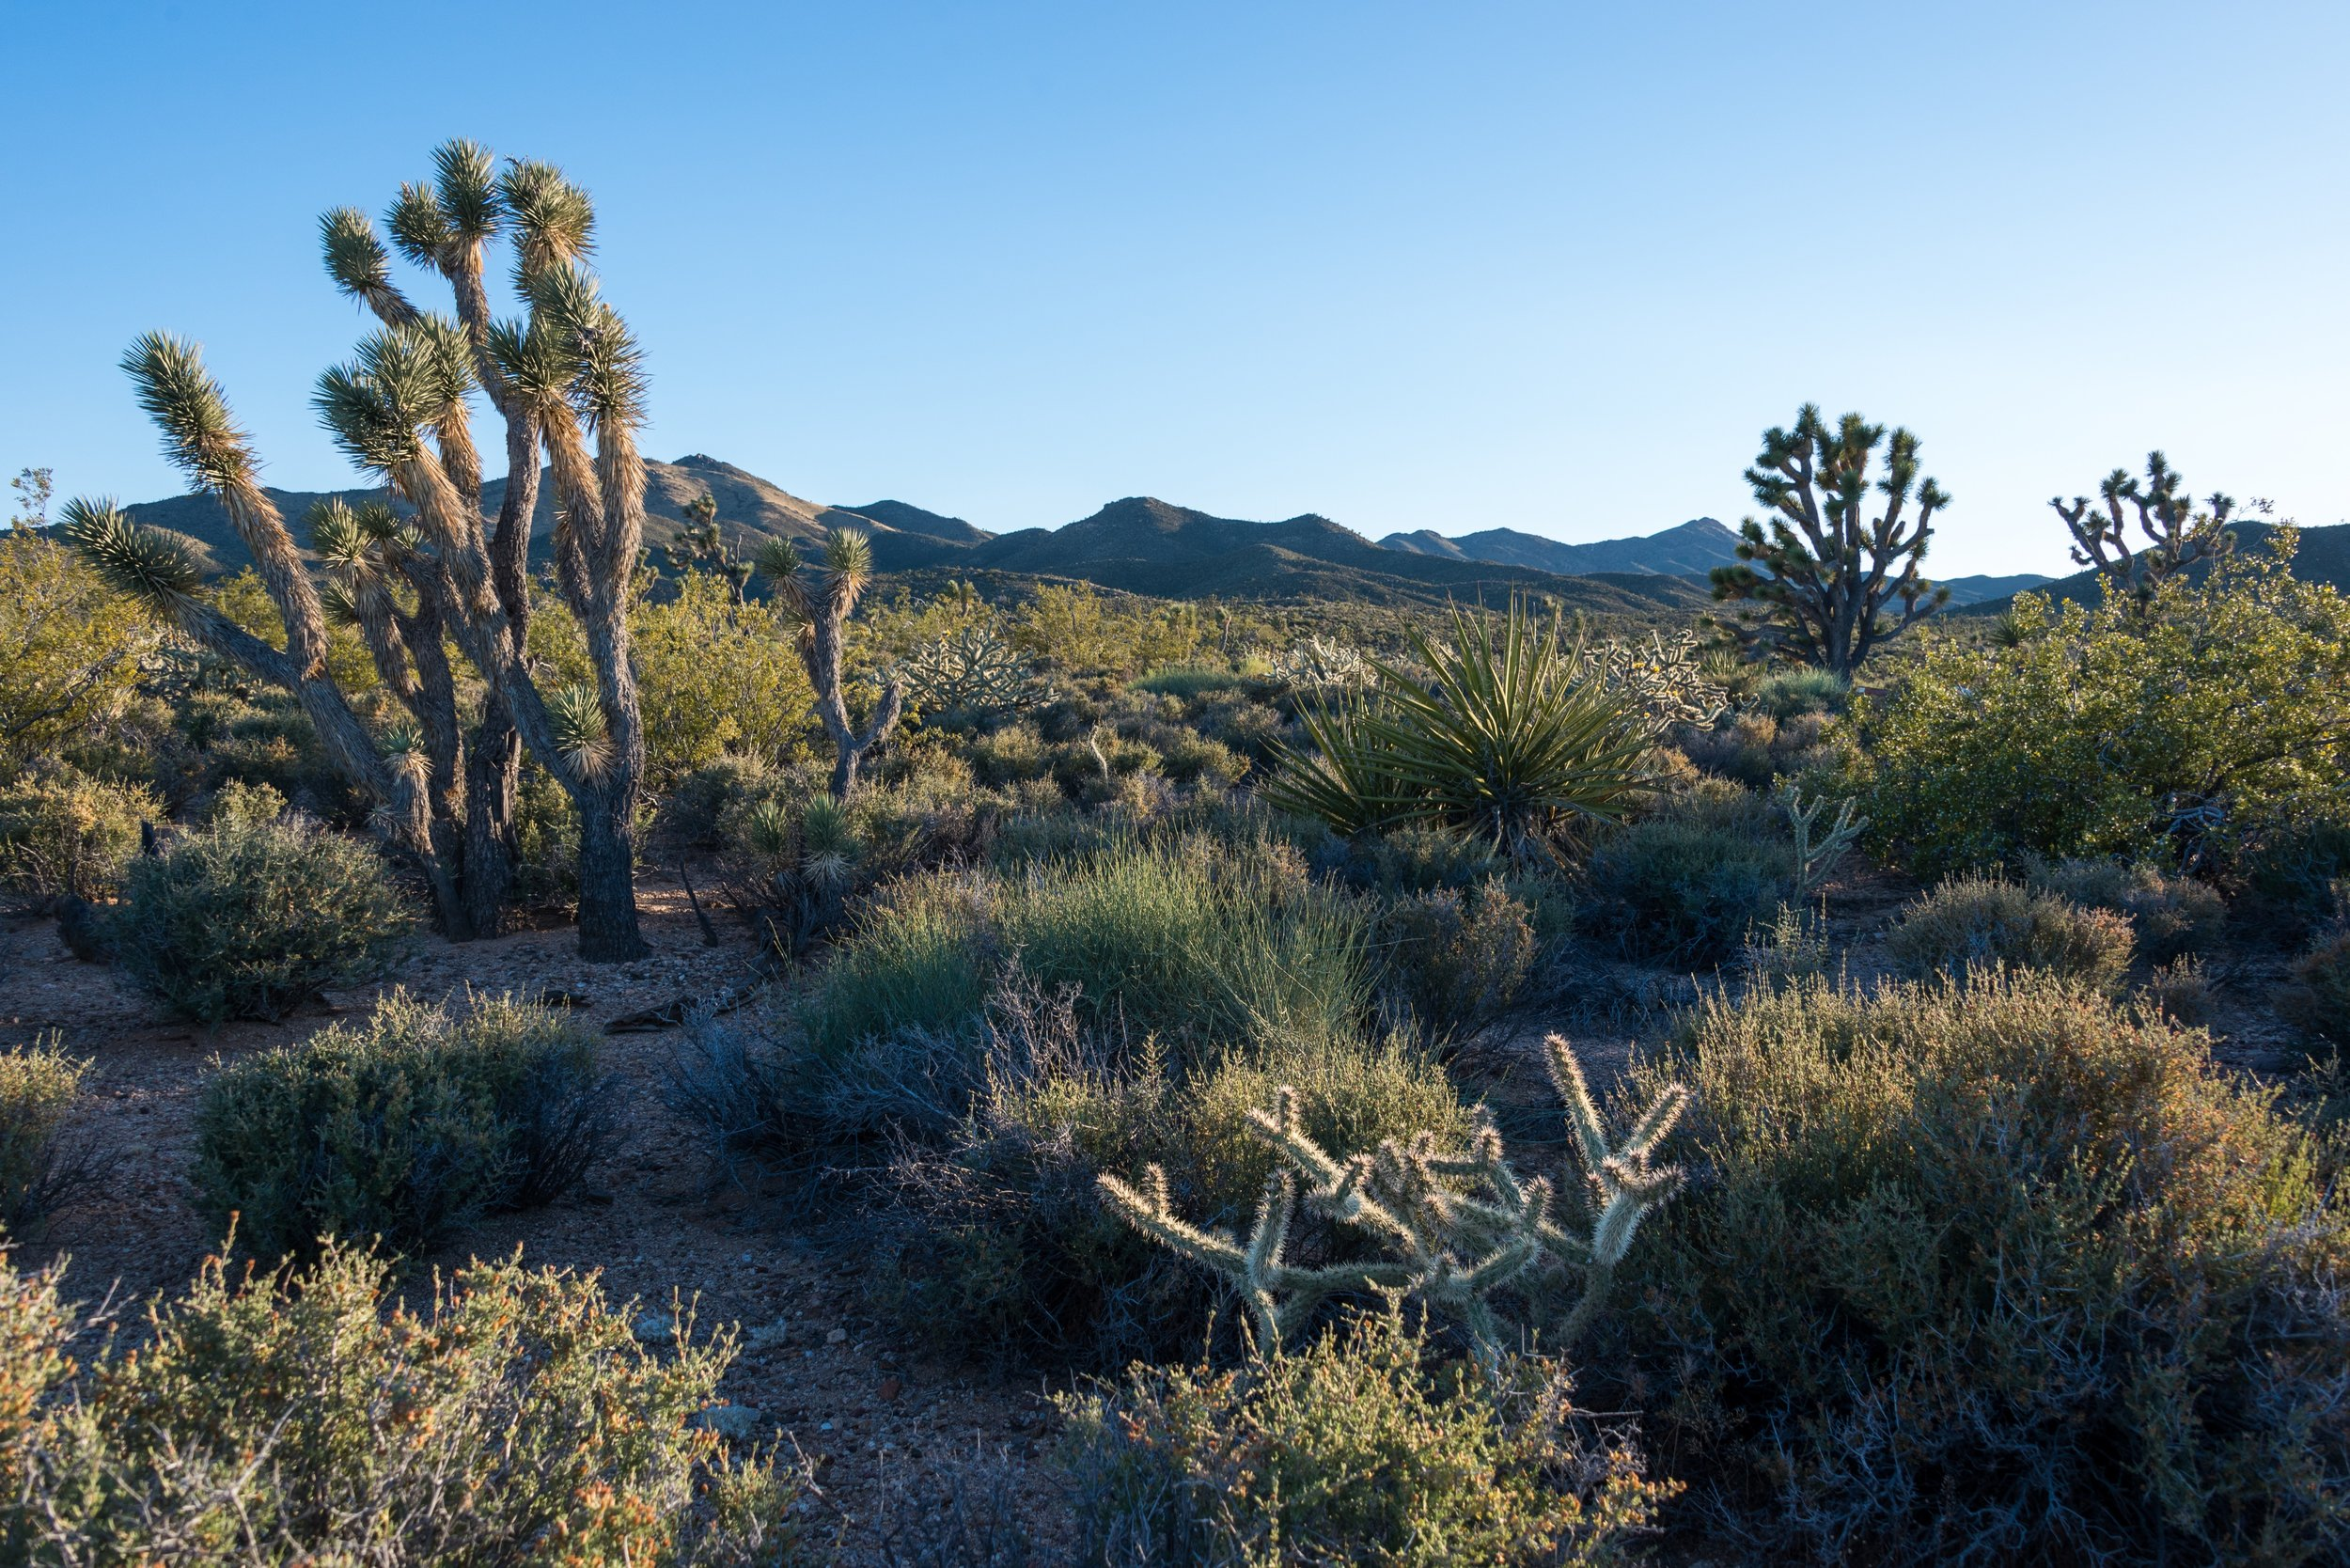 The Crescent Peak area along the Mojave National Preserve's northeastern boundary is part of the world's largest Joshua tree woodland, rich in native plant and animal life.